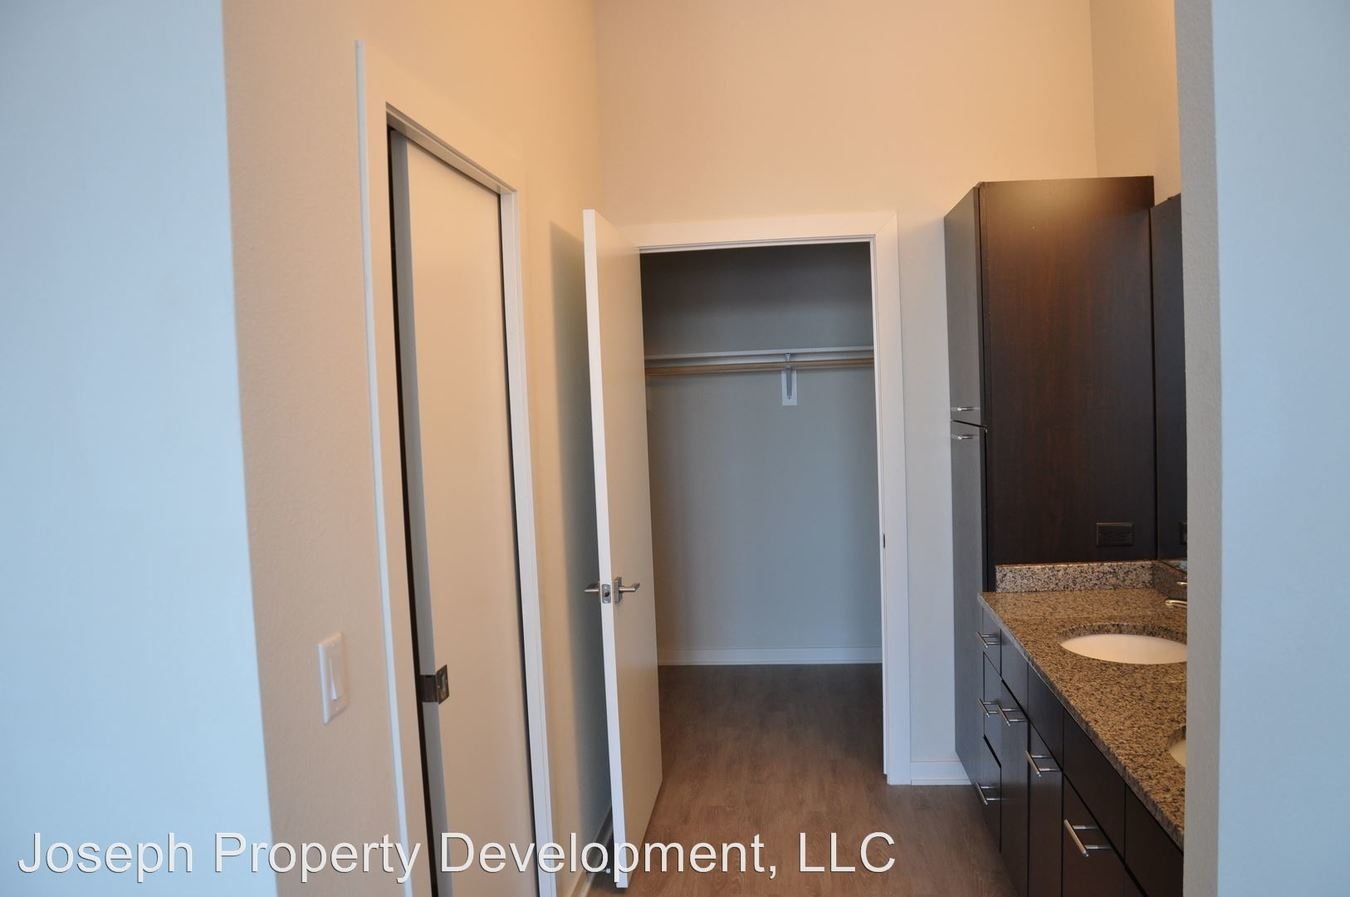 2 Bedrooms 2 Bathrooms Apartment for rent at 5204 S. 76th Street in Greendale, WI